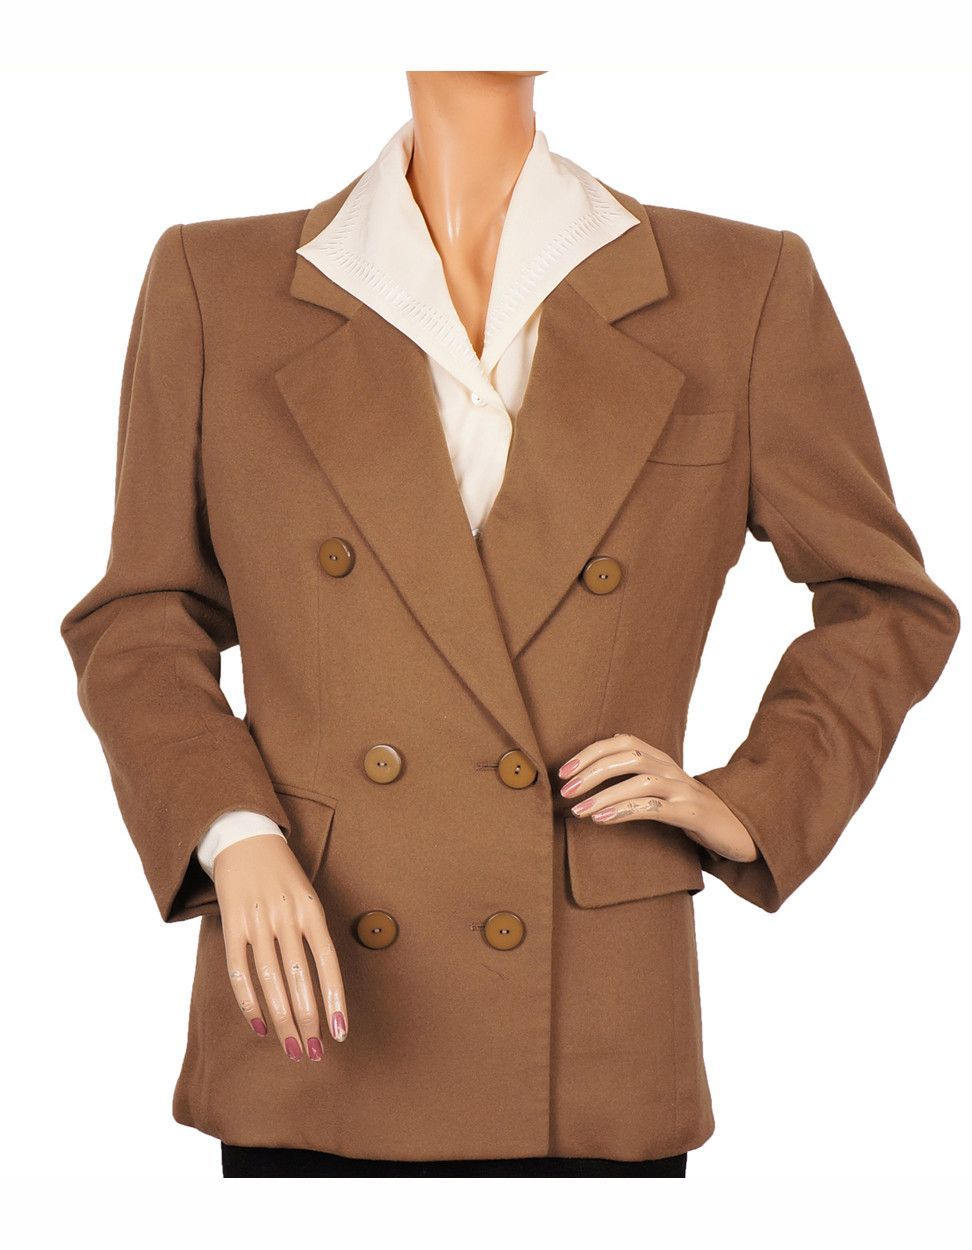 3b89ca52c15 From the early 90s here's a medium brown wool double breasted jacket by Yves  Saint Laurent Rive Gauche Made in France Paris. Made of a fine quality wool,  ...